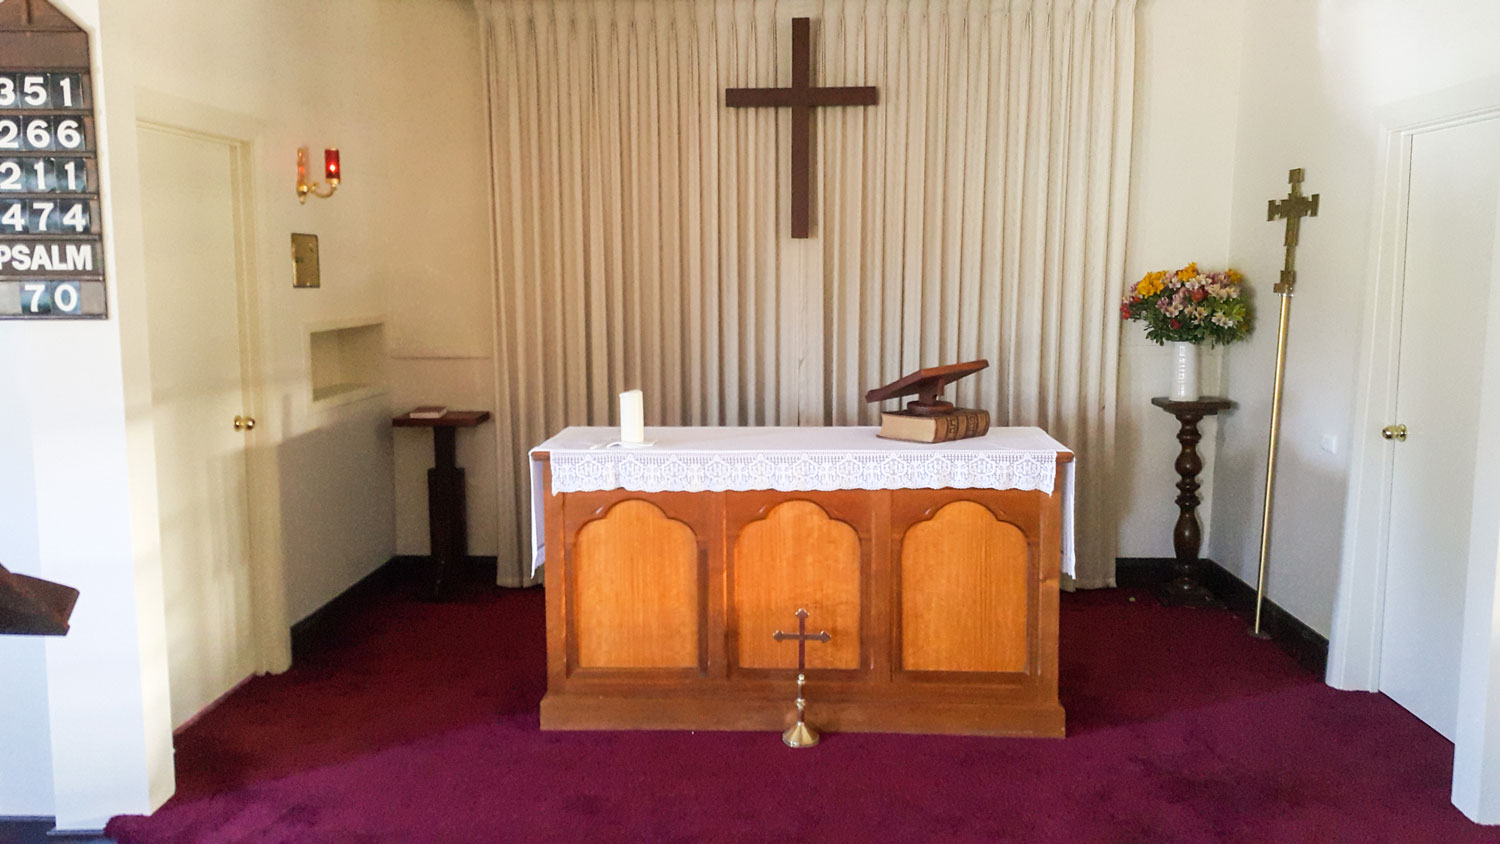 At St George's we recognise that the church are the people who make up the congregation and local community. -